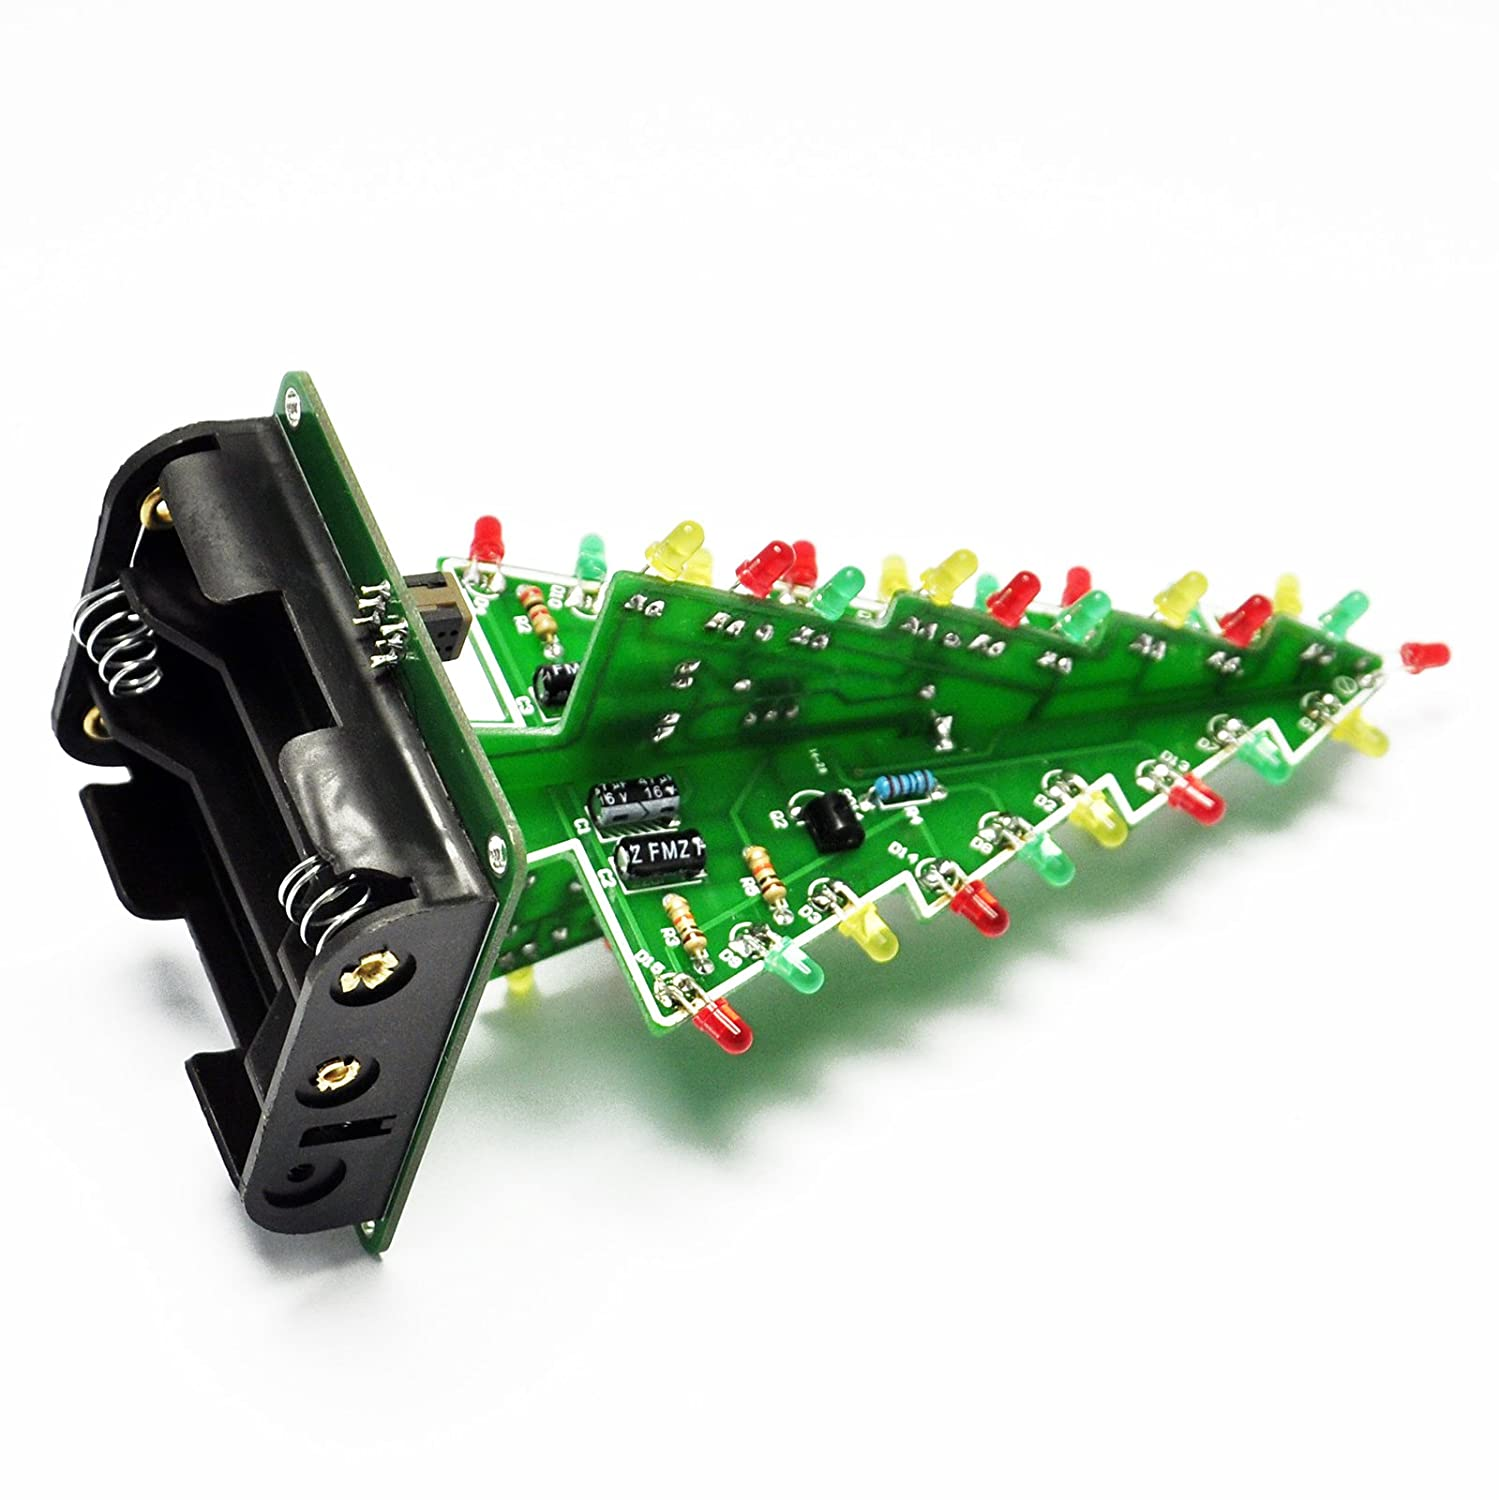 Gikfun 3d Christmas Trees Led Diy Kit Flash Circuit Flashers Circuits And Projects 24 Ek1719 Computers Accessories